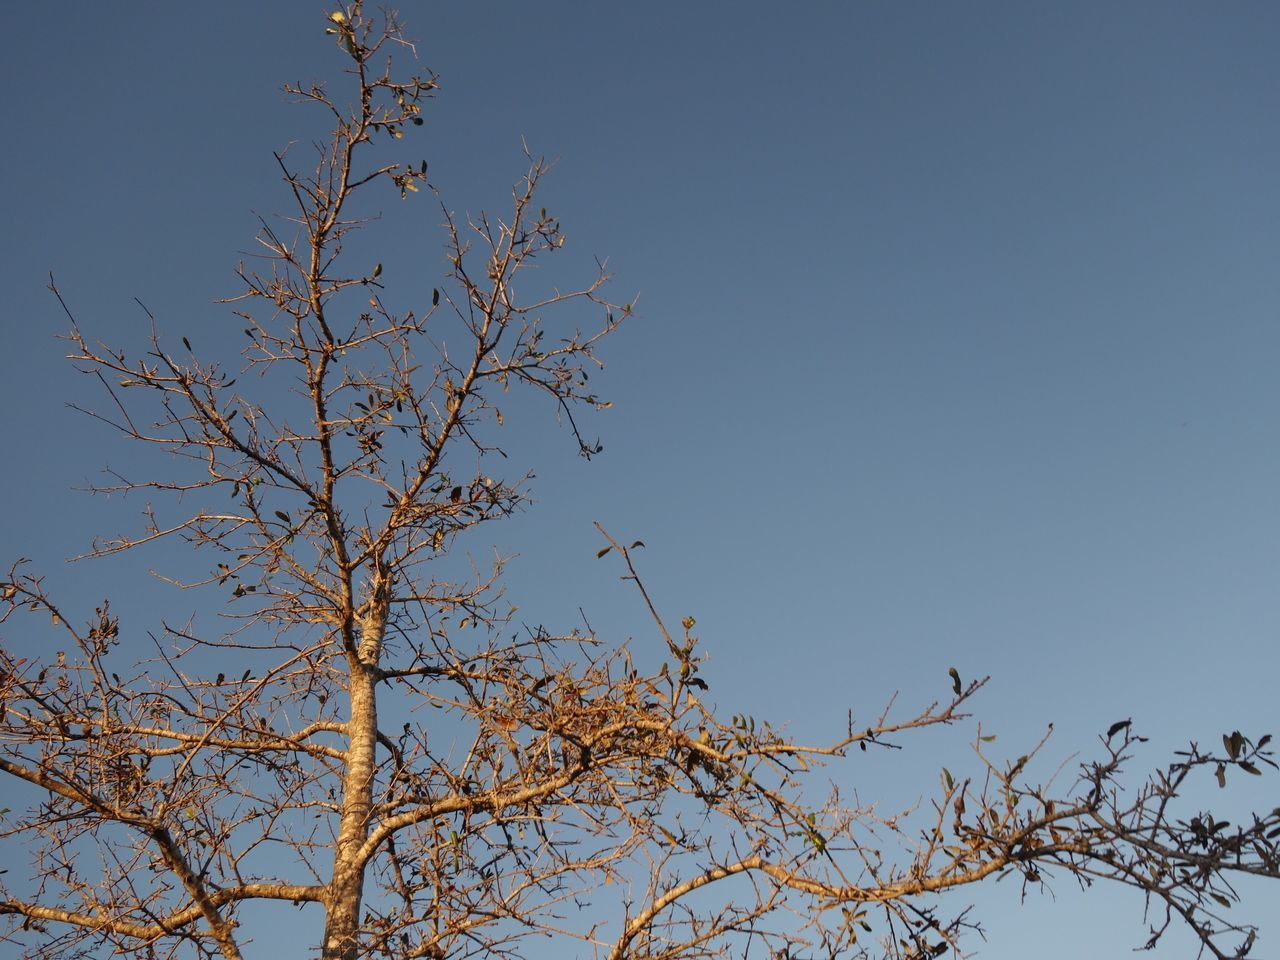 low angle view, branch, nature, tree, clear sky, beauty in nature, no people, day, outdoors, growth, blue, flower, bare tree, sky, freshness